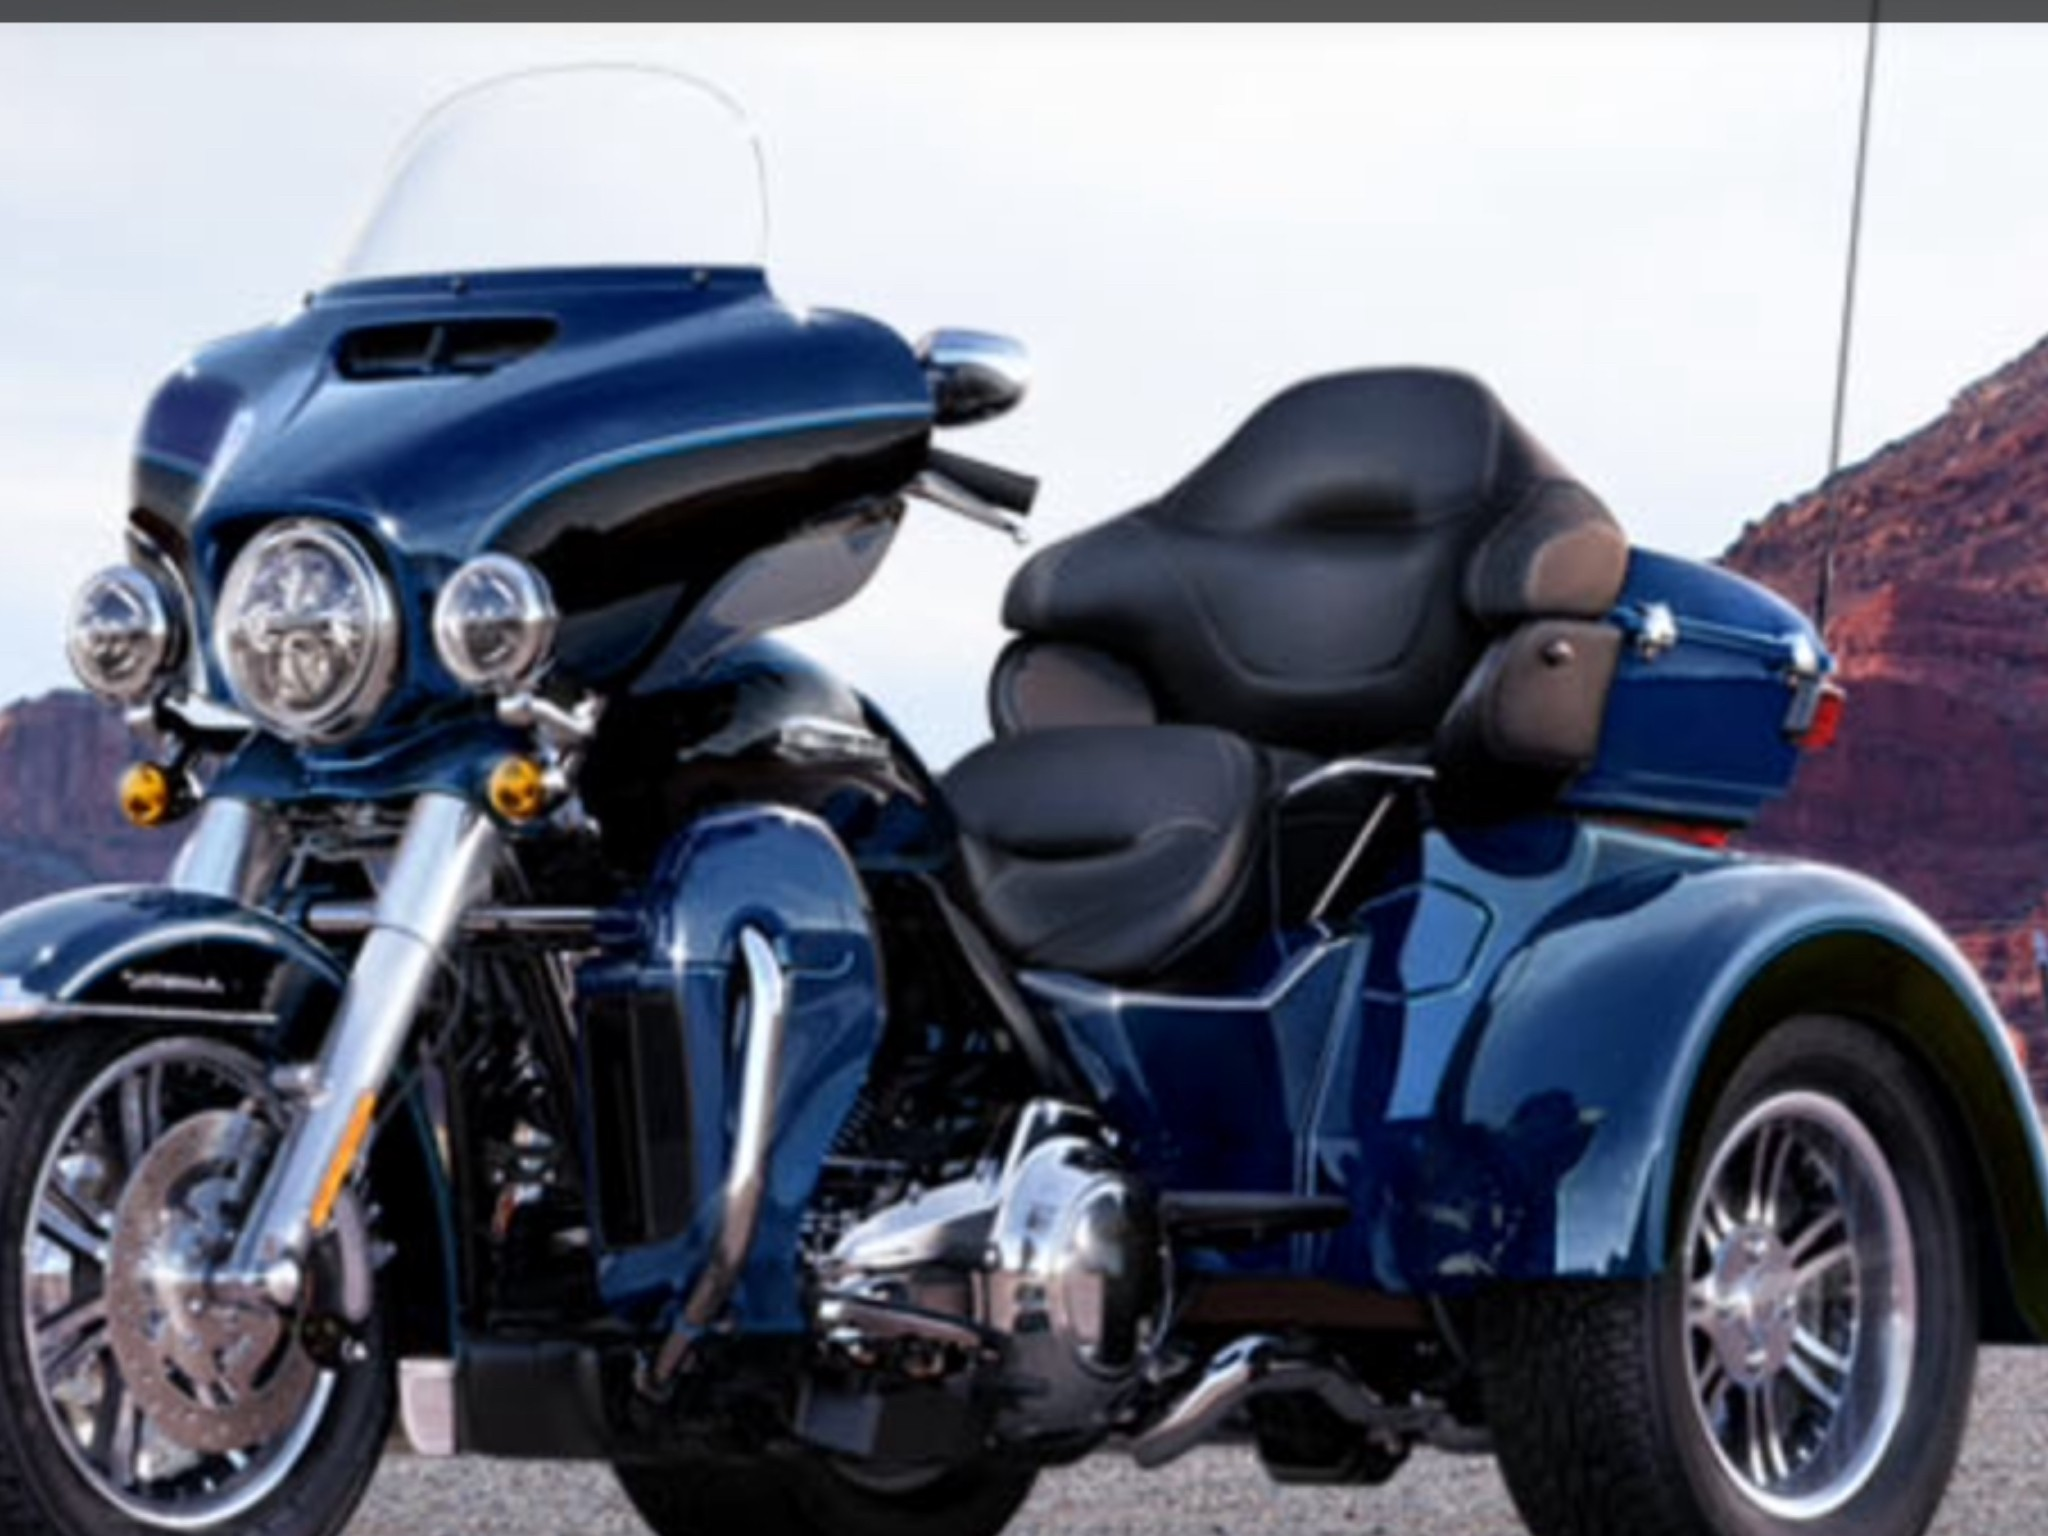 Harley's/Trike's and other Bike's are here for you to see..... - cover